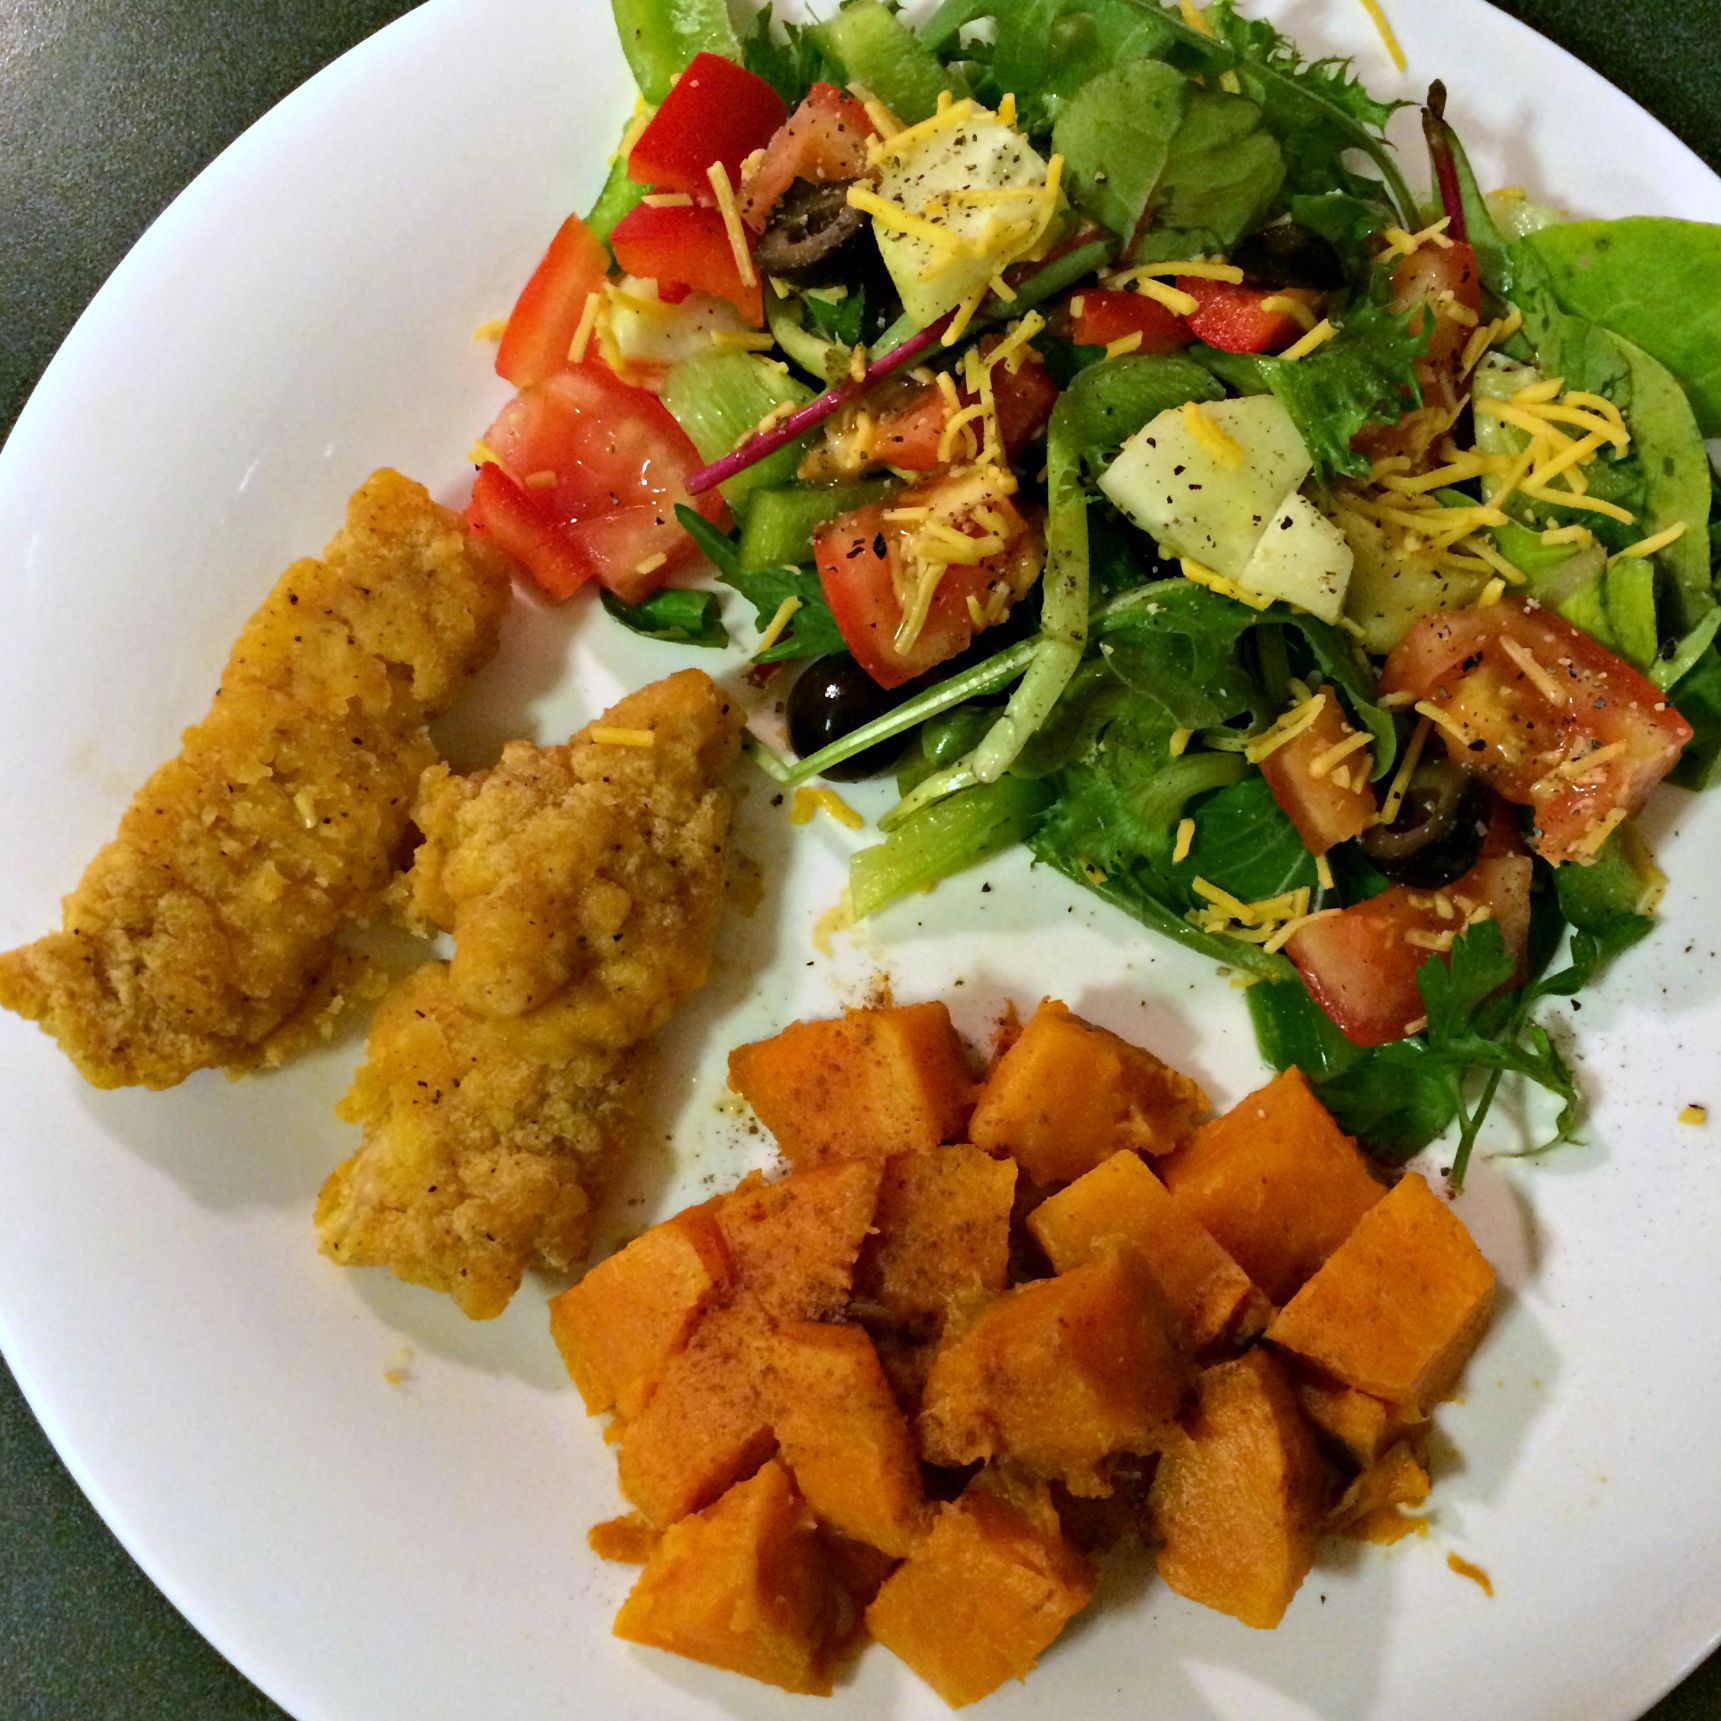 gluten free chicken tenders with salad and sweet potato